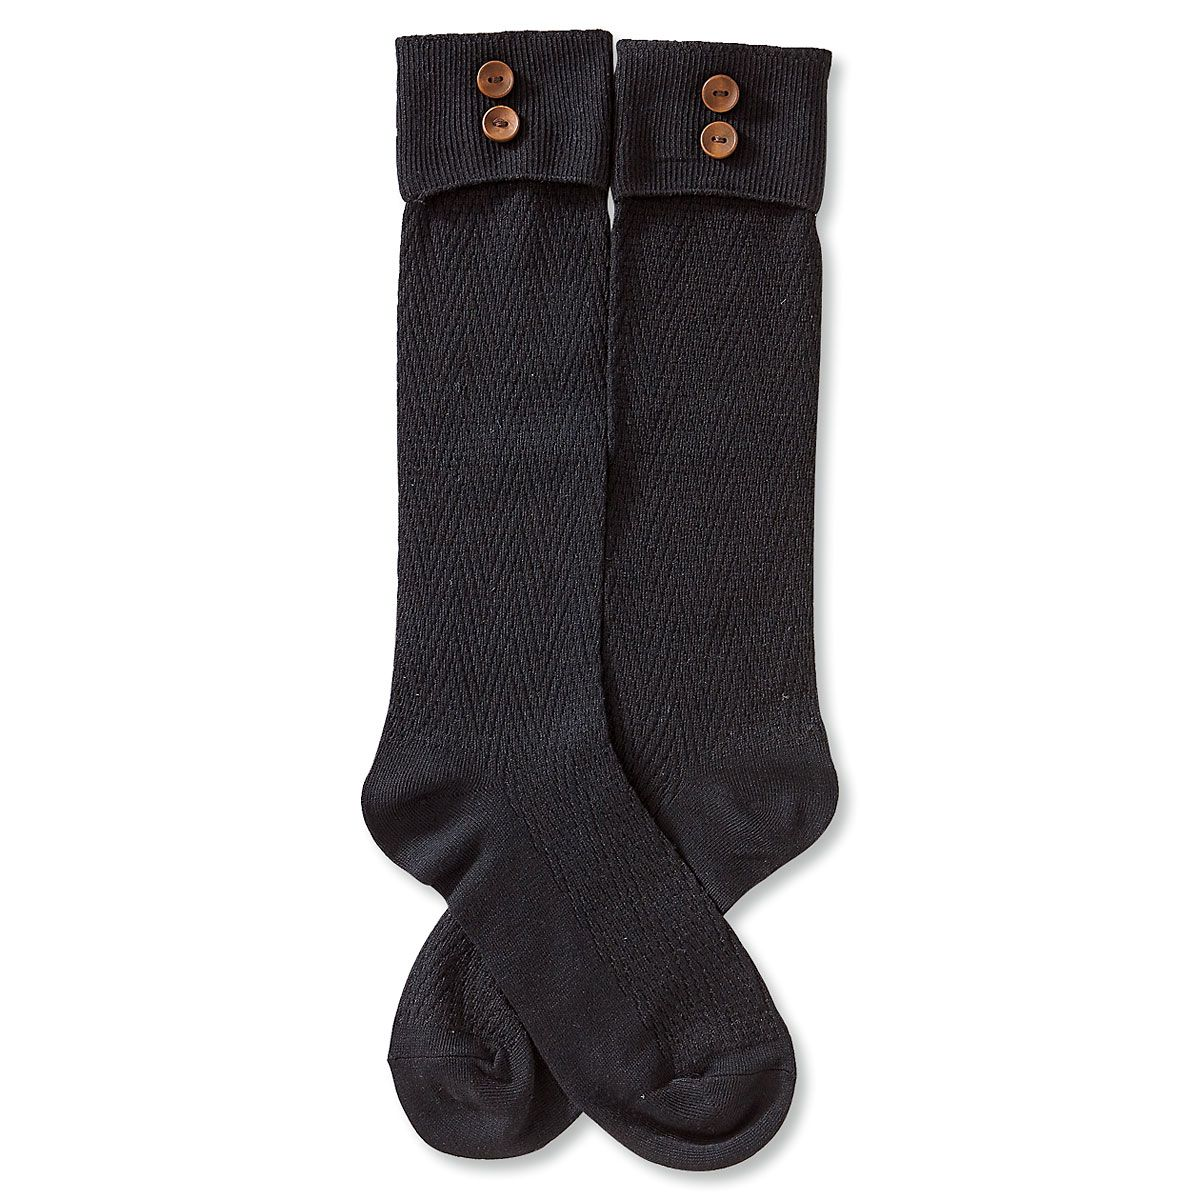 Boot Socks - Black Rolled Cuff